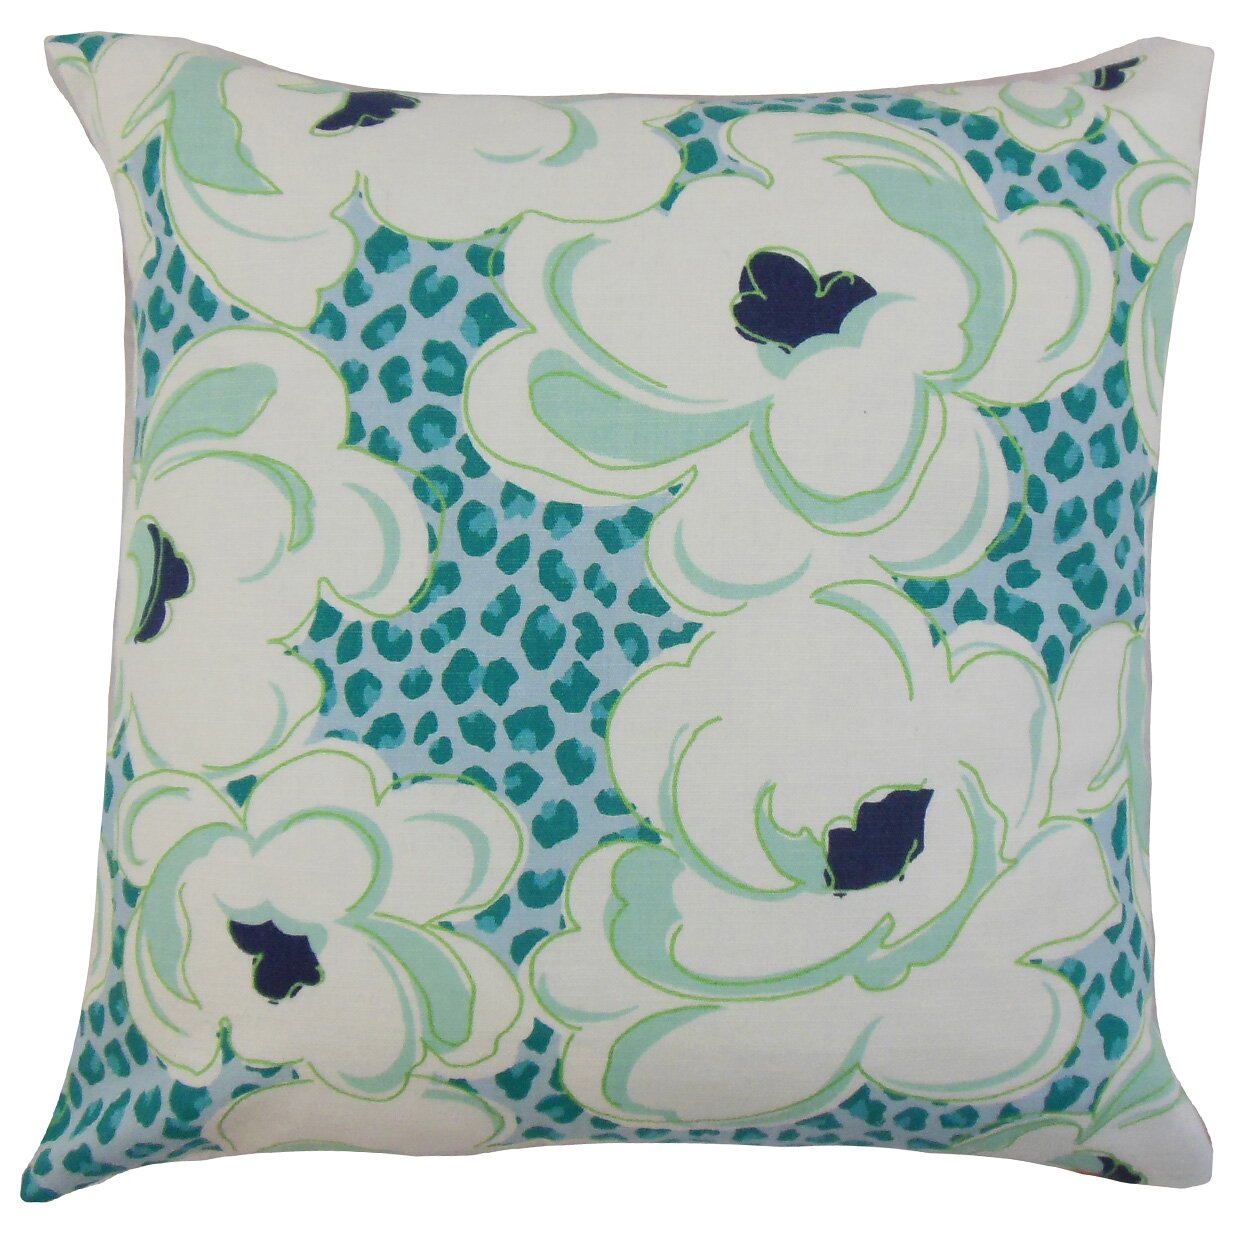 Wayfair Blue Decorative Pillows : The Pillow Collection Ohara Throw Pillow Wayfair.ca